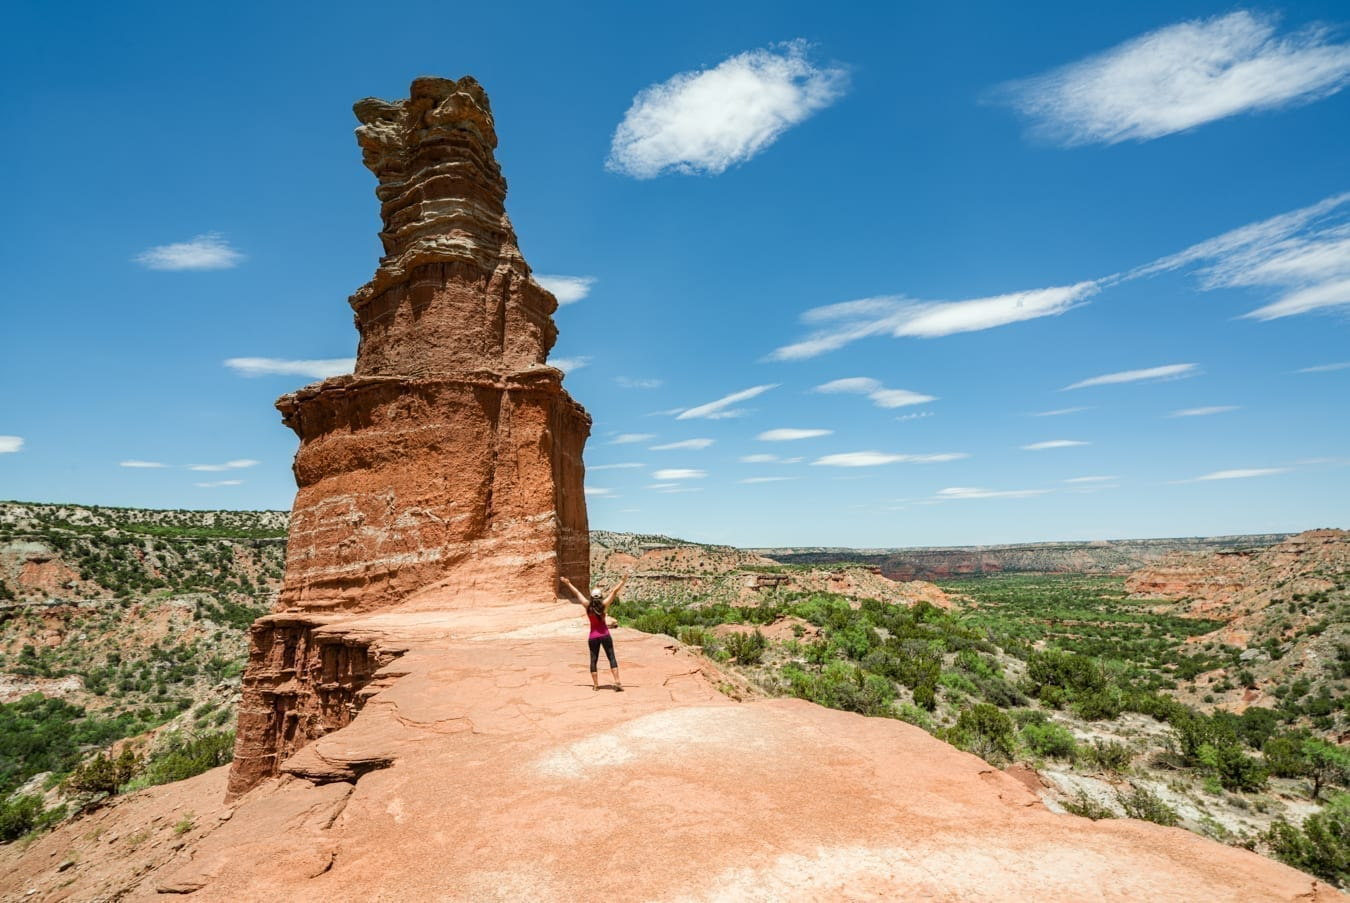 Kate Storm standing in front of the Lighthouse in Palo Duro Canyon TX